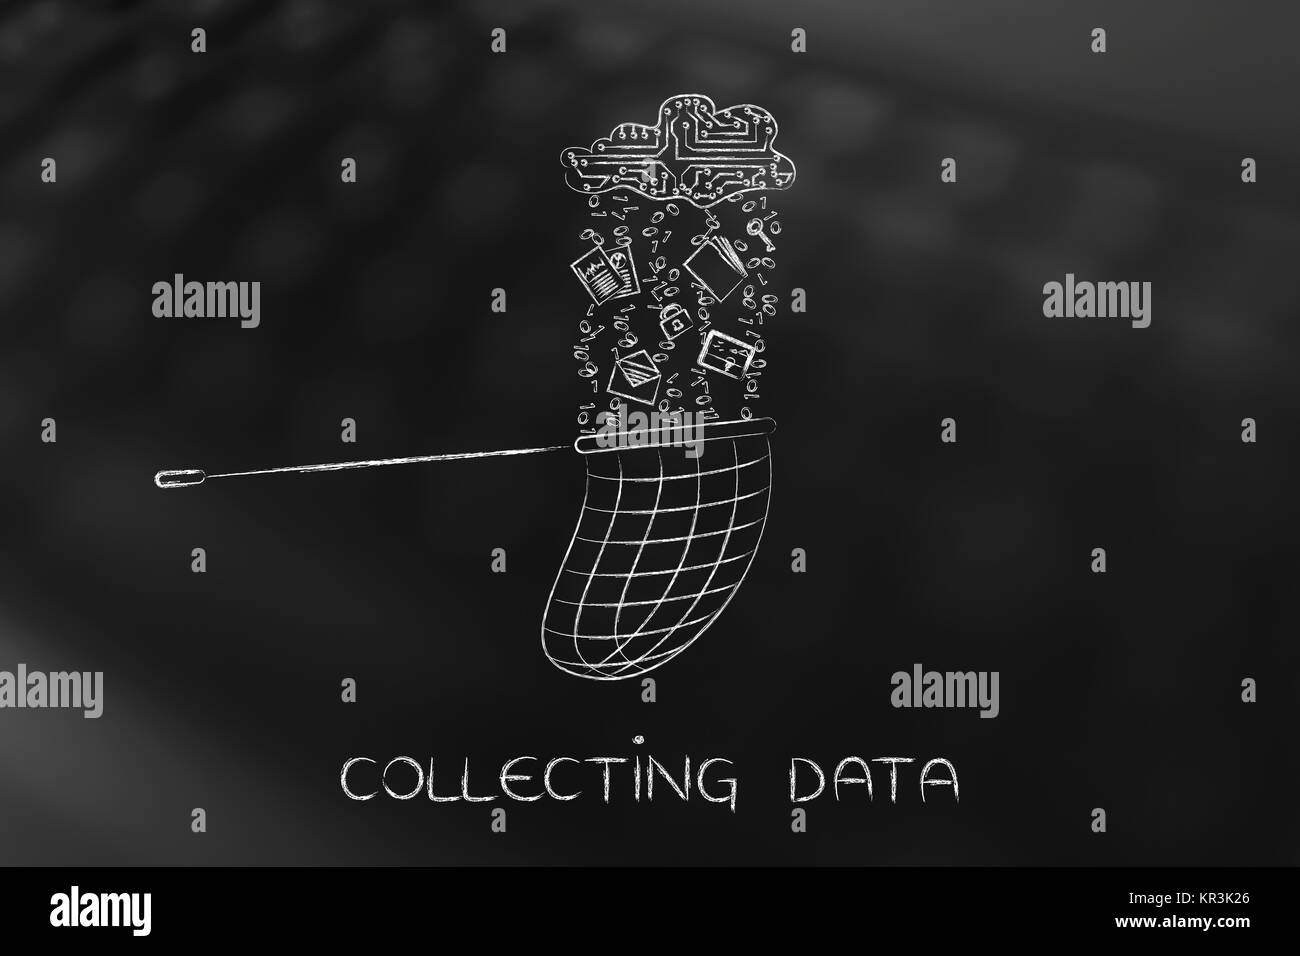 net catching files falling from an electronic cloud, collect data Stock Photo